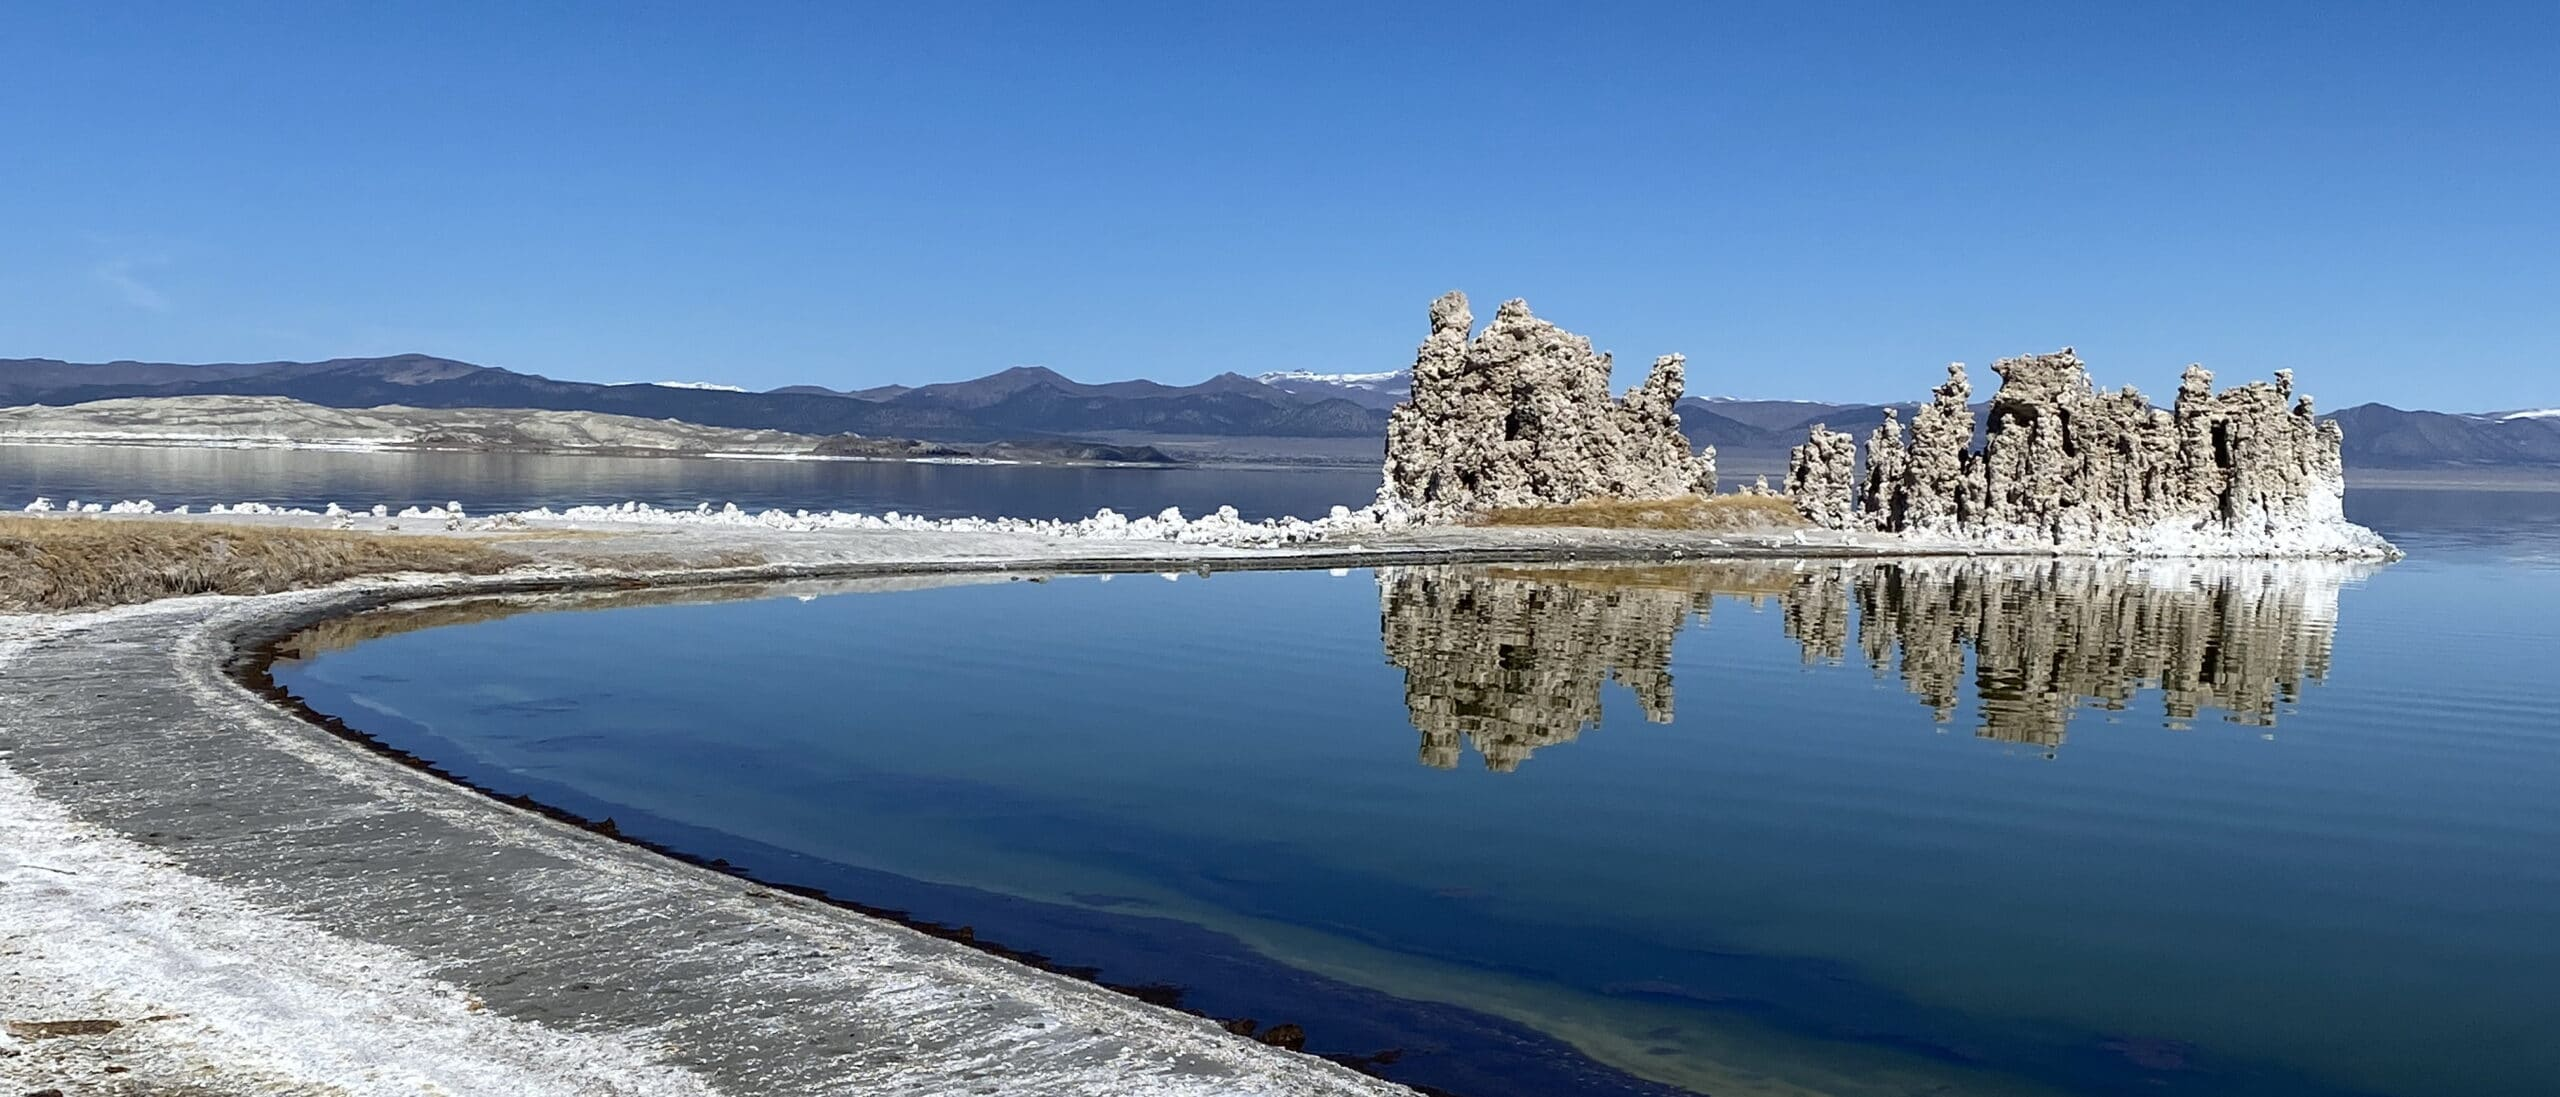 A white and grey shoreline wraps around to tufa towers perfectly reflected in a bright blue Mono Lake with clear blue skies above.